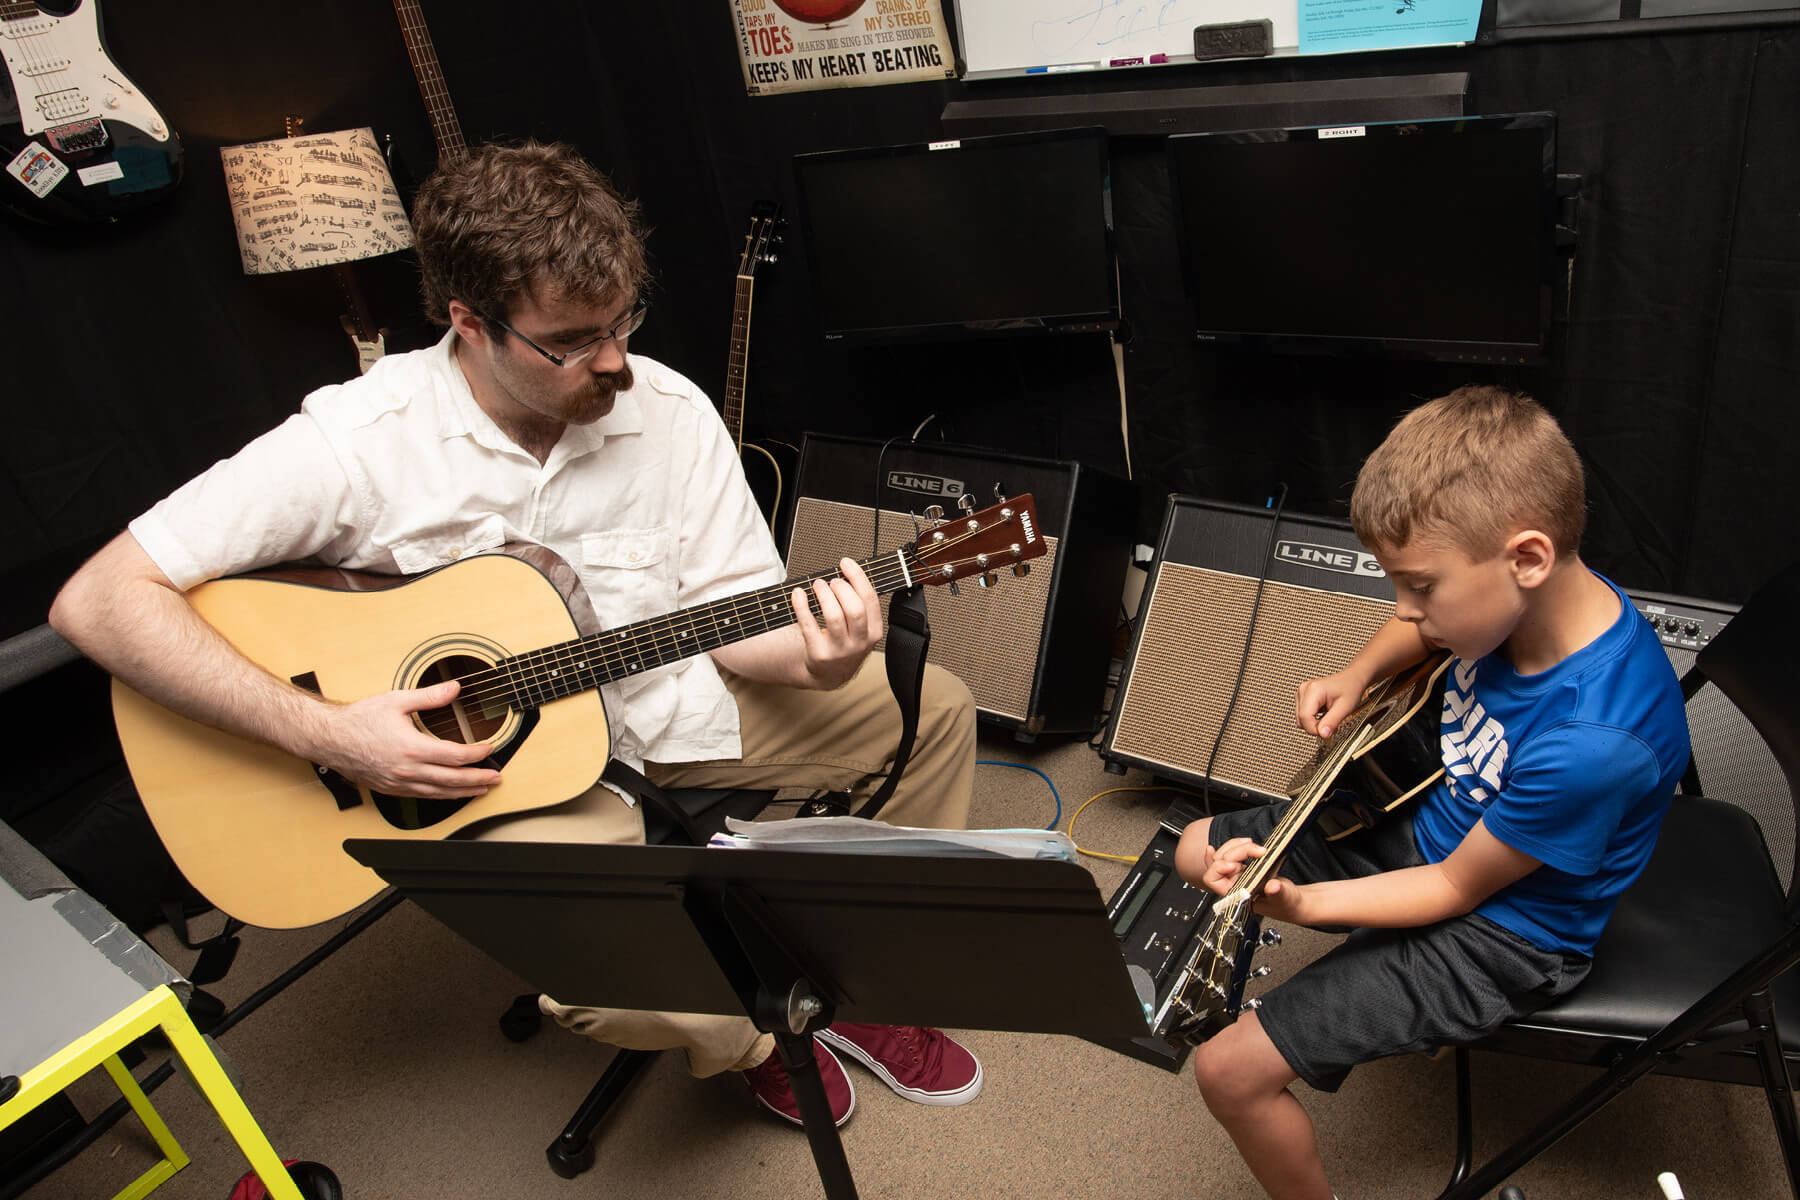 Instructor and student playing acoustic guitar in room with Line 6 amps.